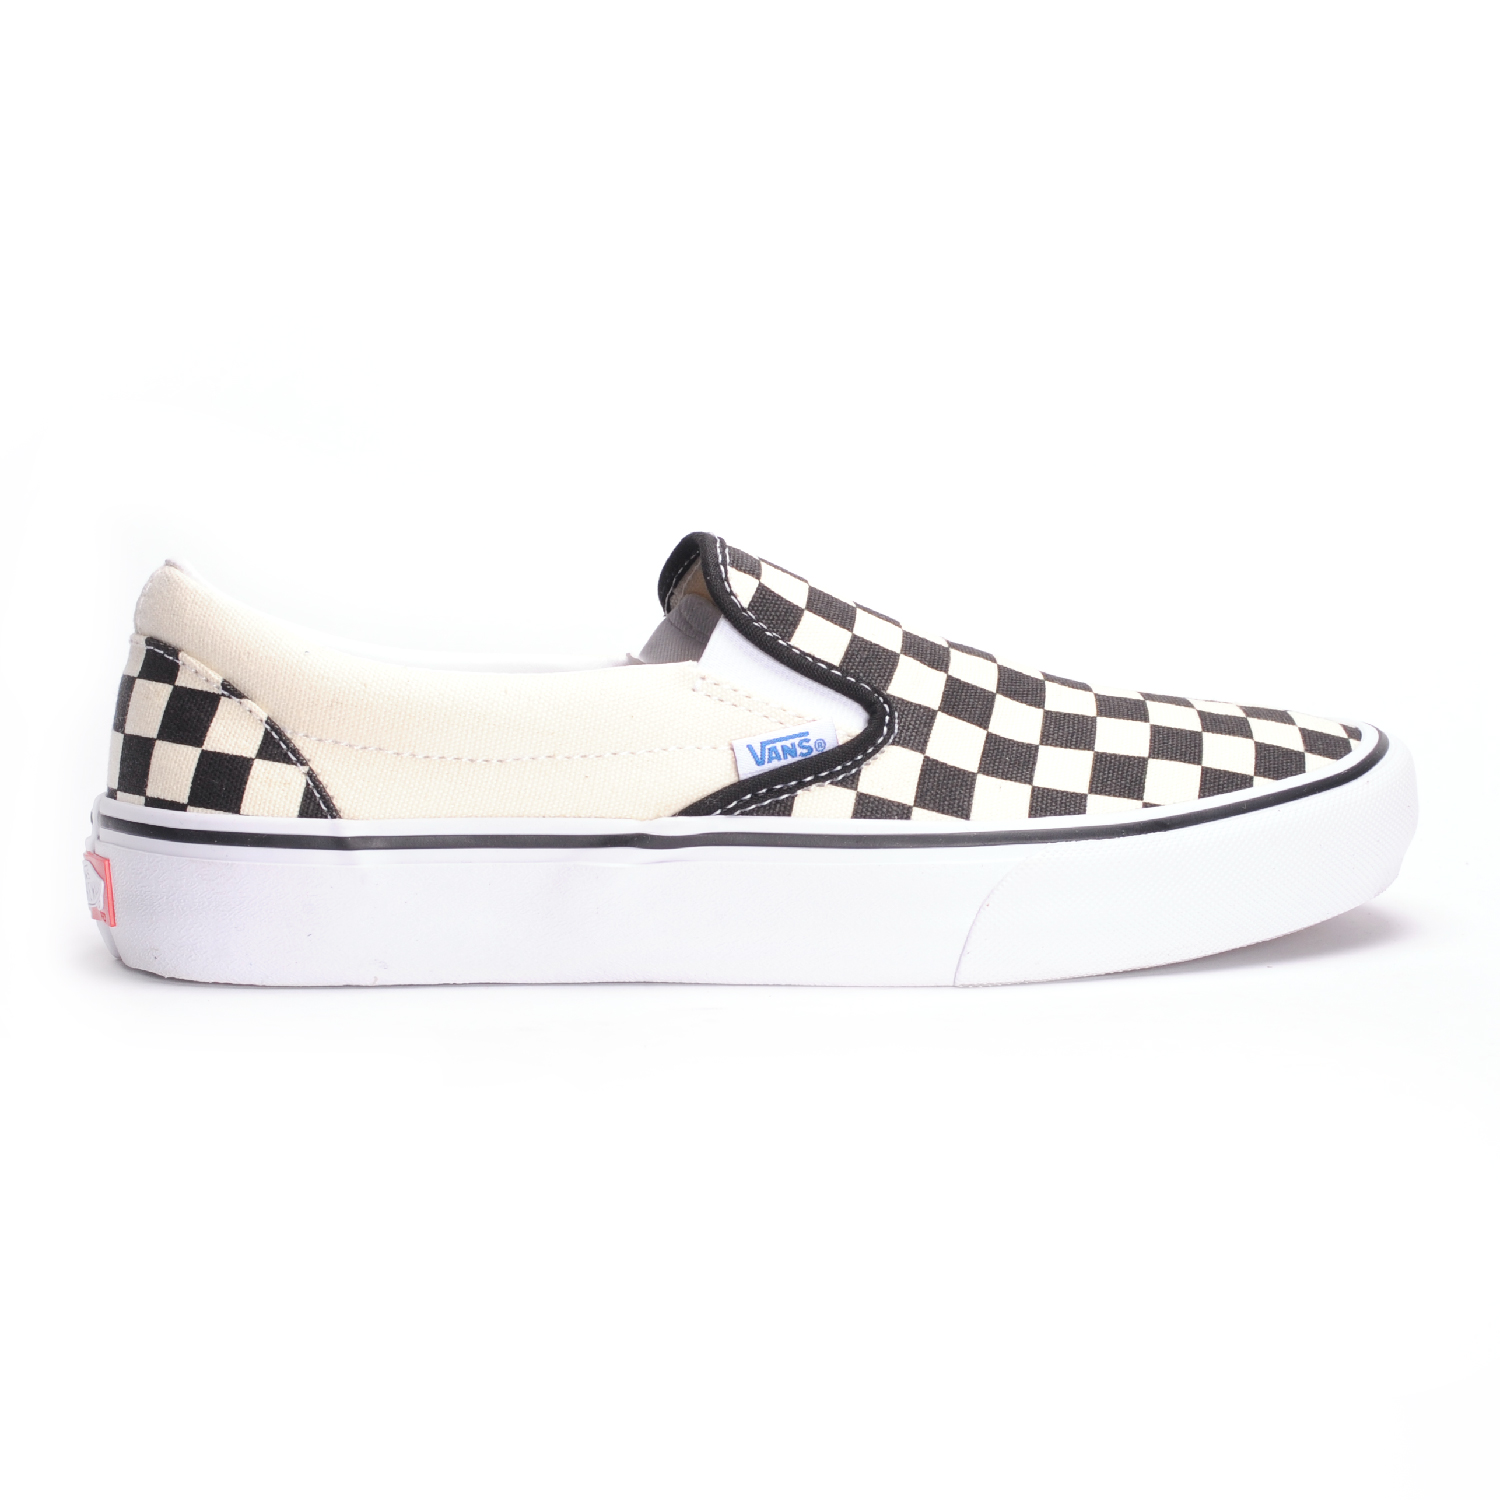 1a8411946f2 Vans Slip-On Pro (Checkerboard Black White) Men s Skate Shoes